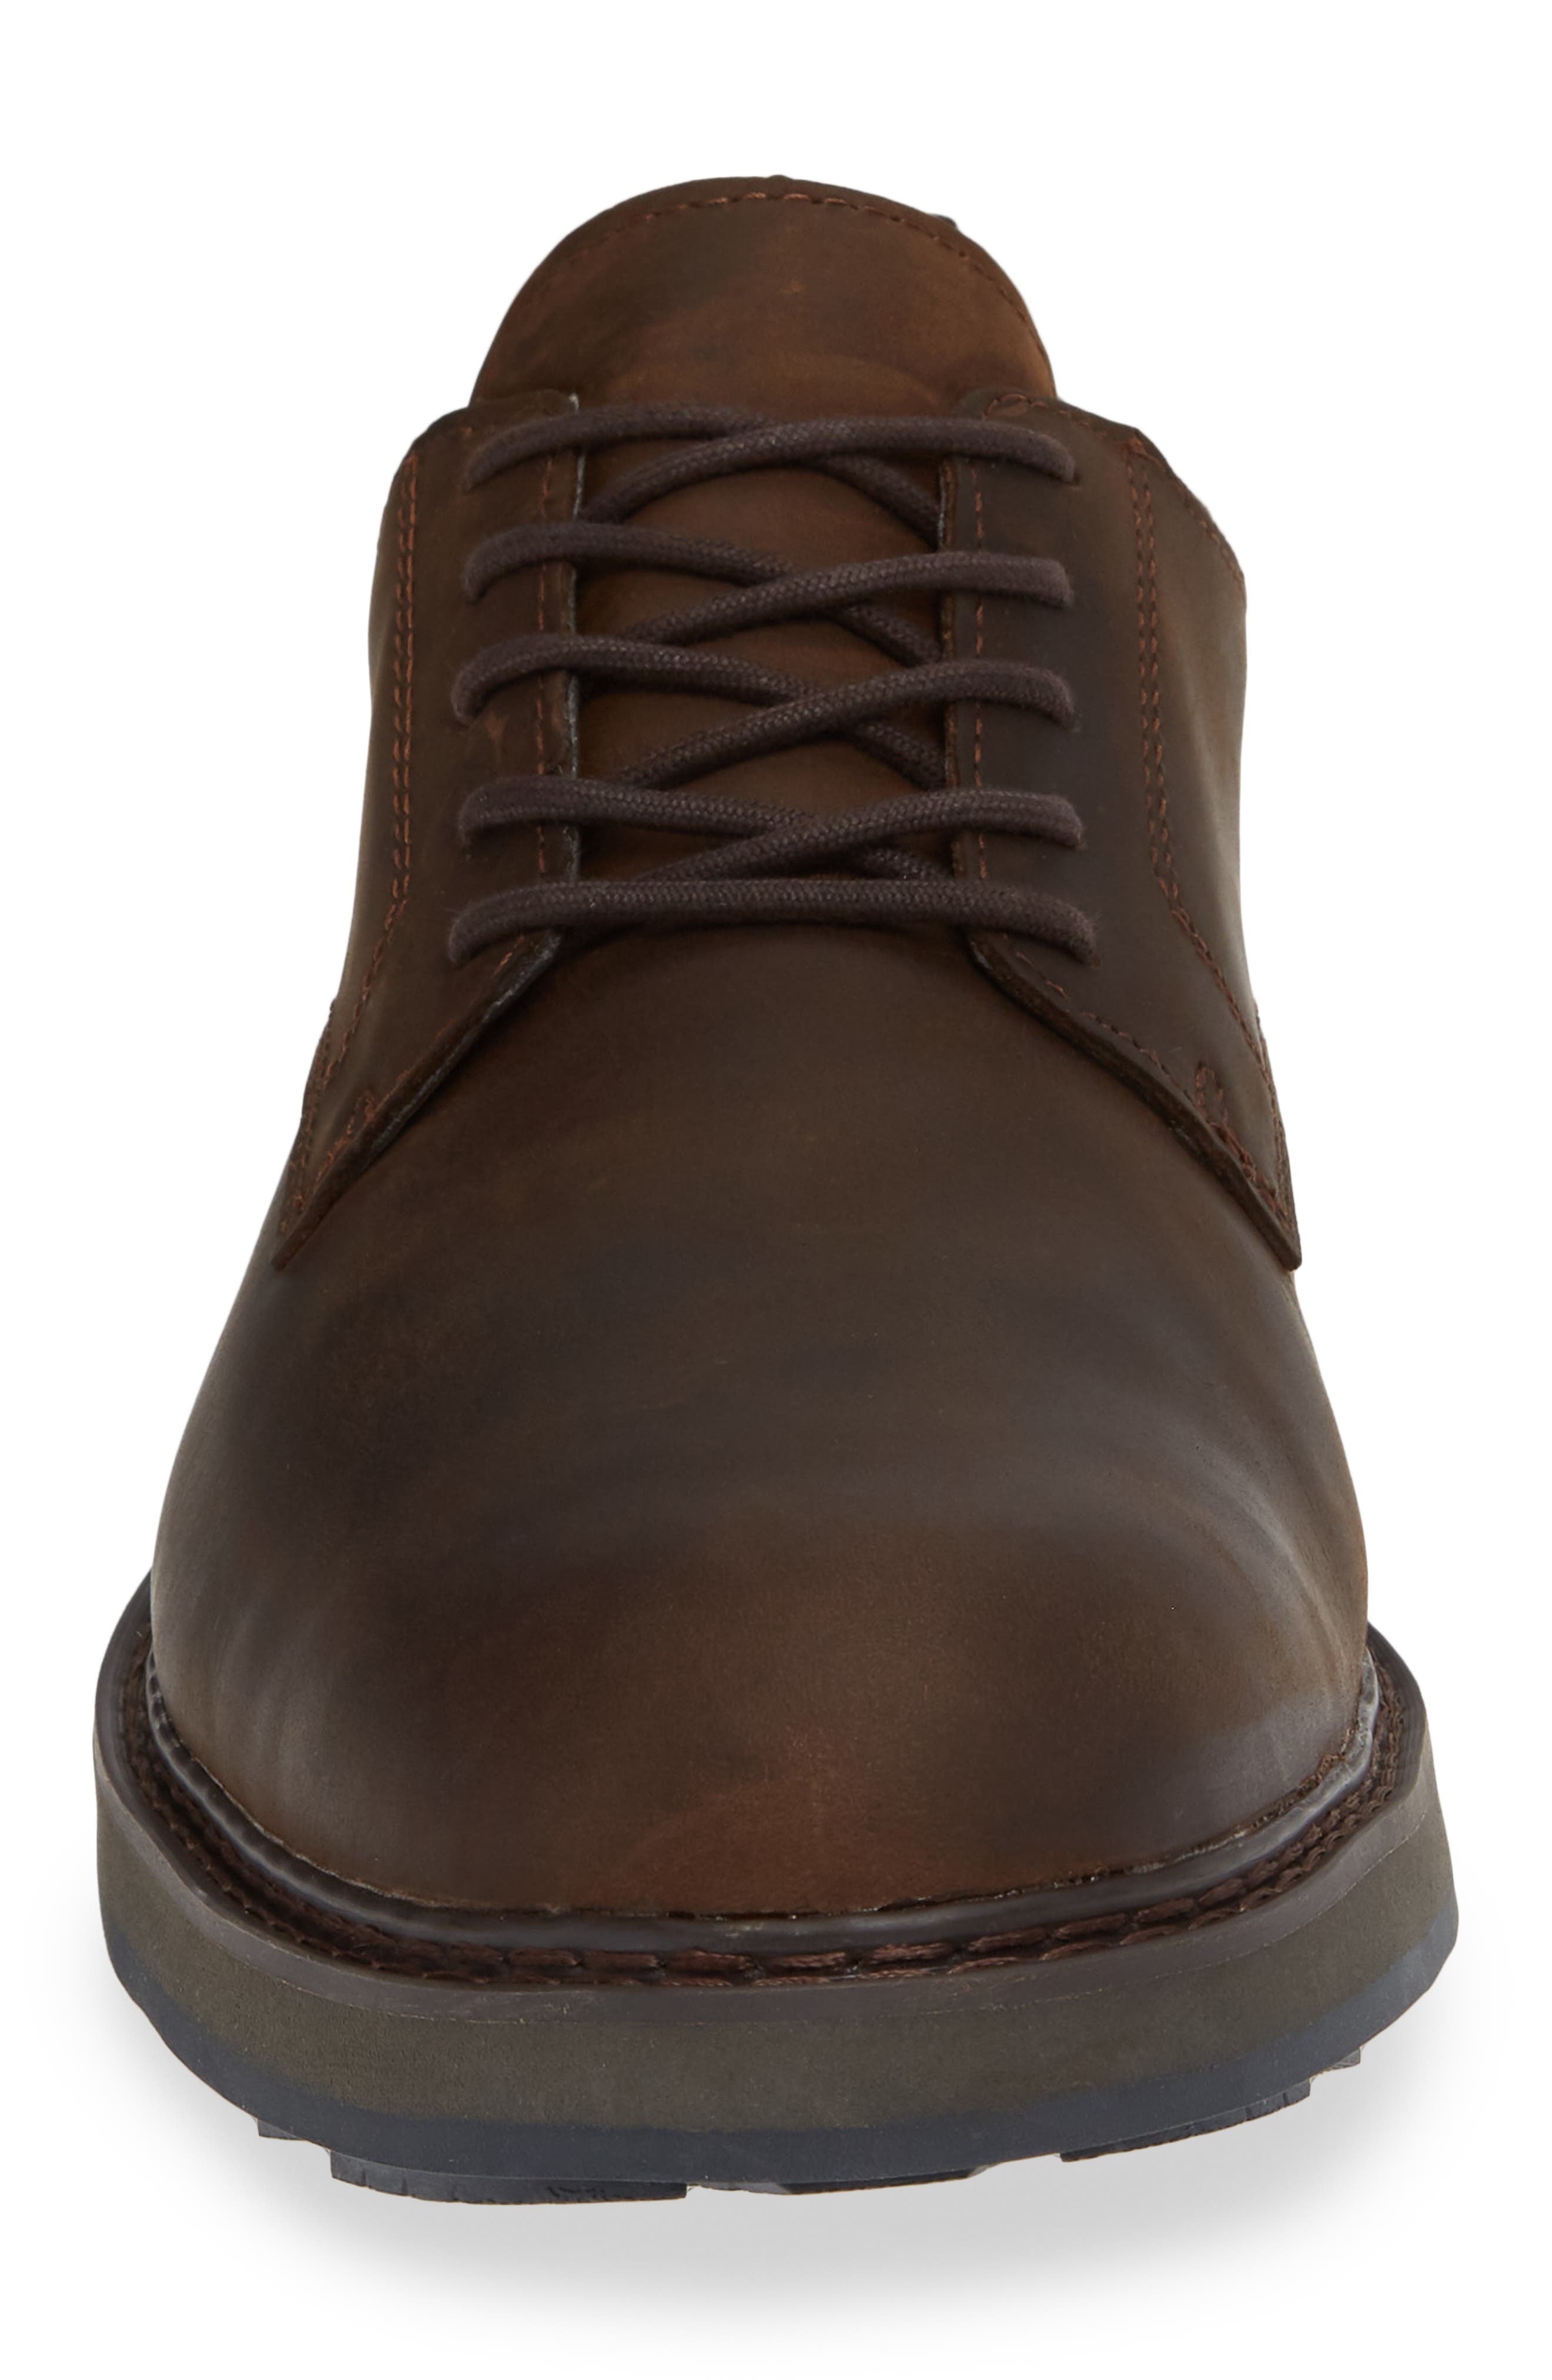 Squall Canyon Waterproof Plain Toe Derby,                             Alternate thumbnail 4, color,                             BROWN LEATHER